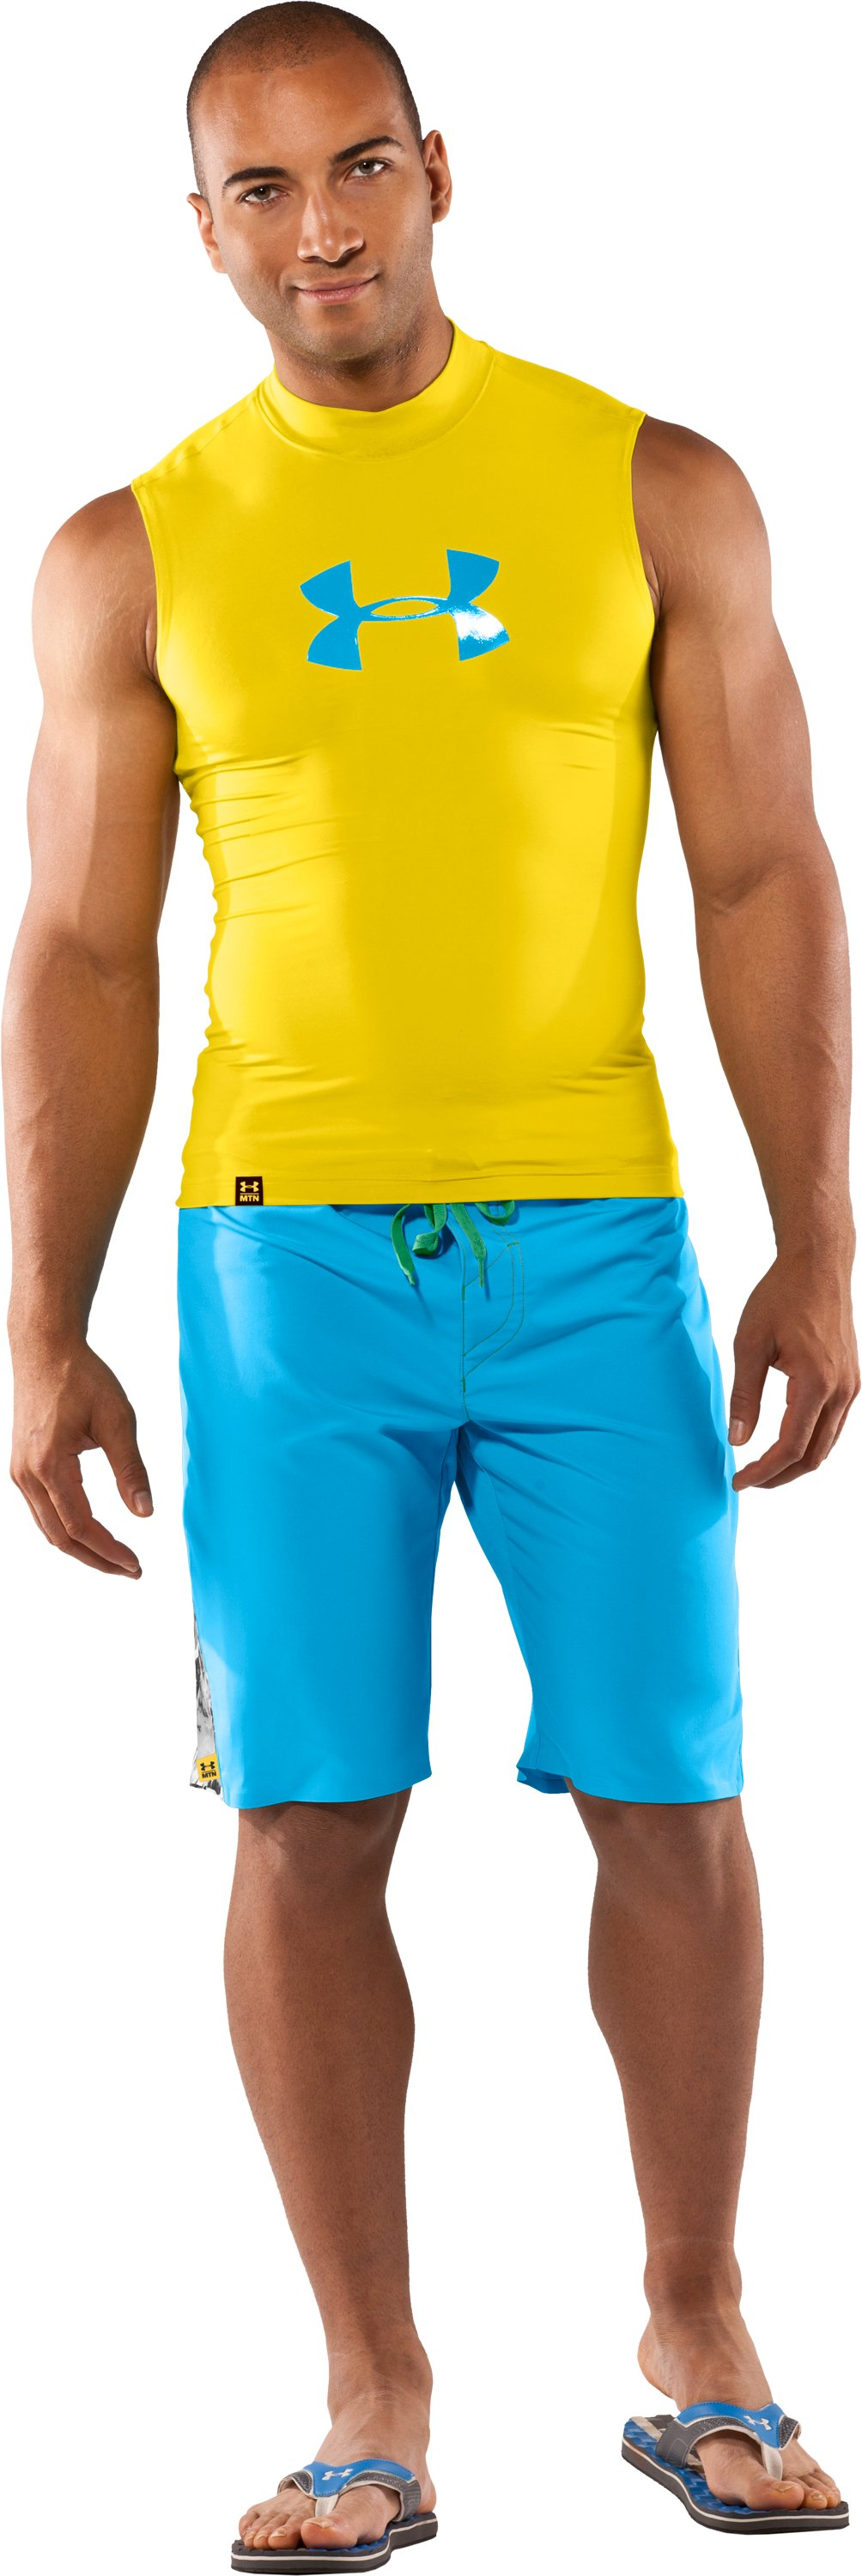 Men's Proaid Sleeveless Rash Guard, Lemonade